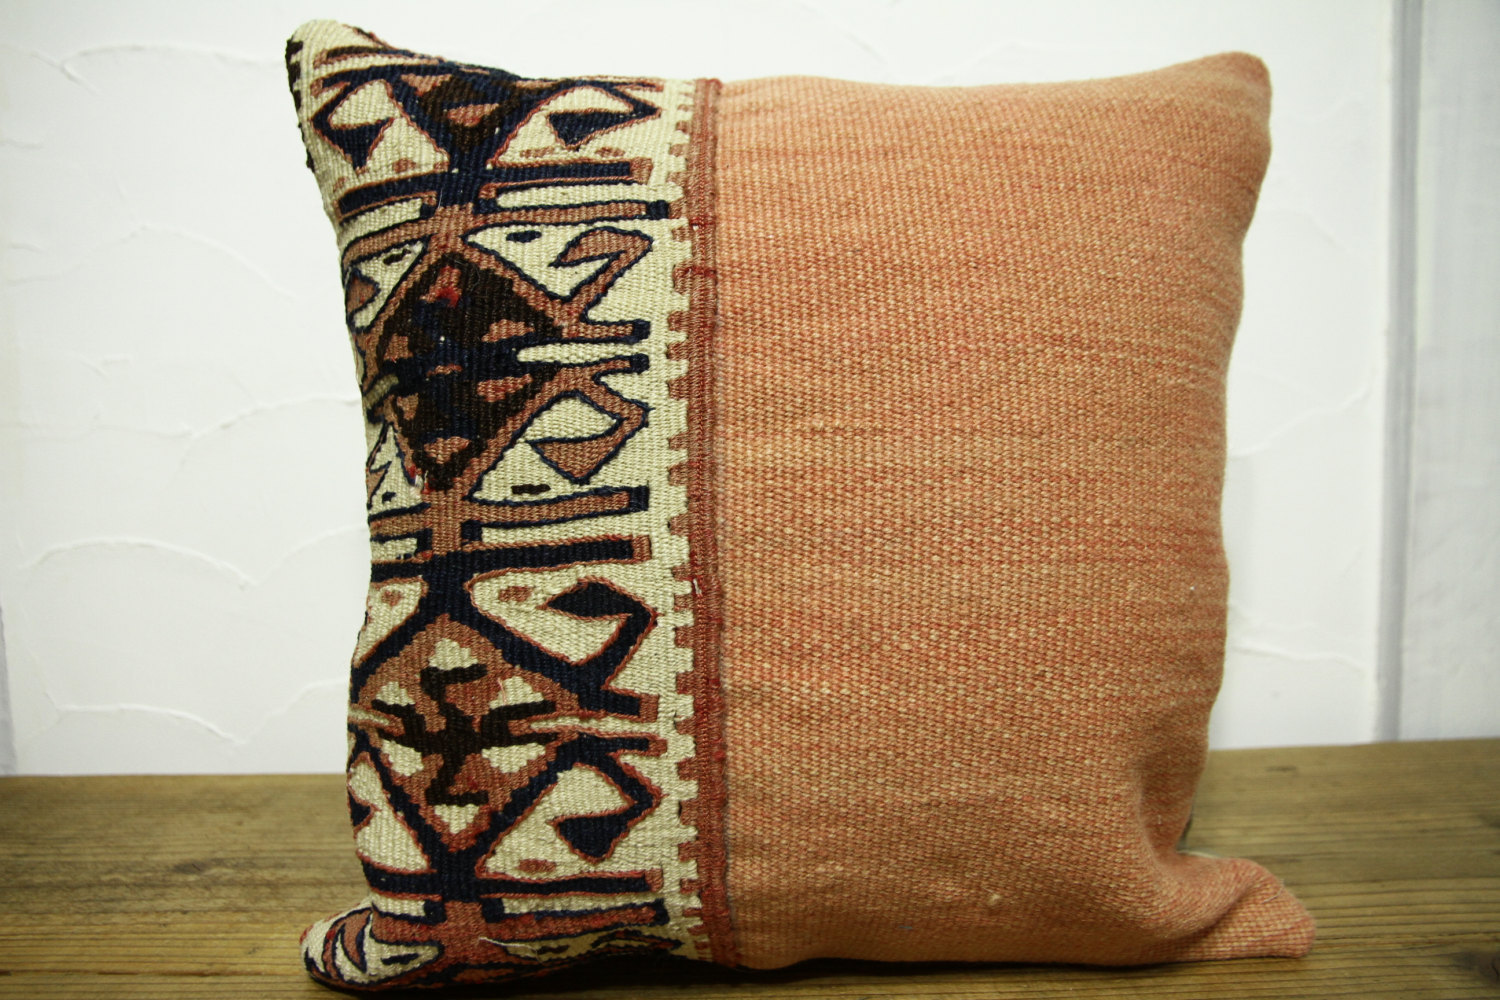 Kilim Pillows |16x16 | Decorative Pillows | 481 | Accent Pillows turkish pillow